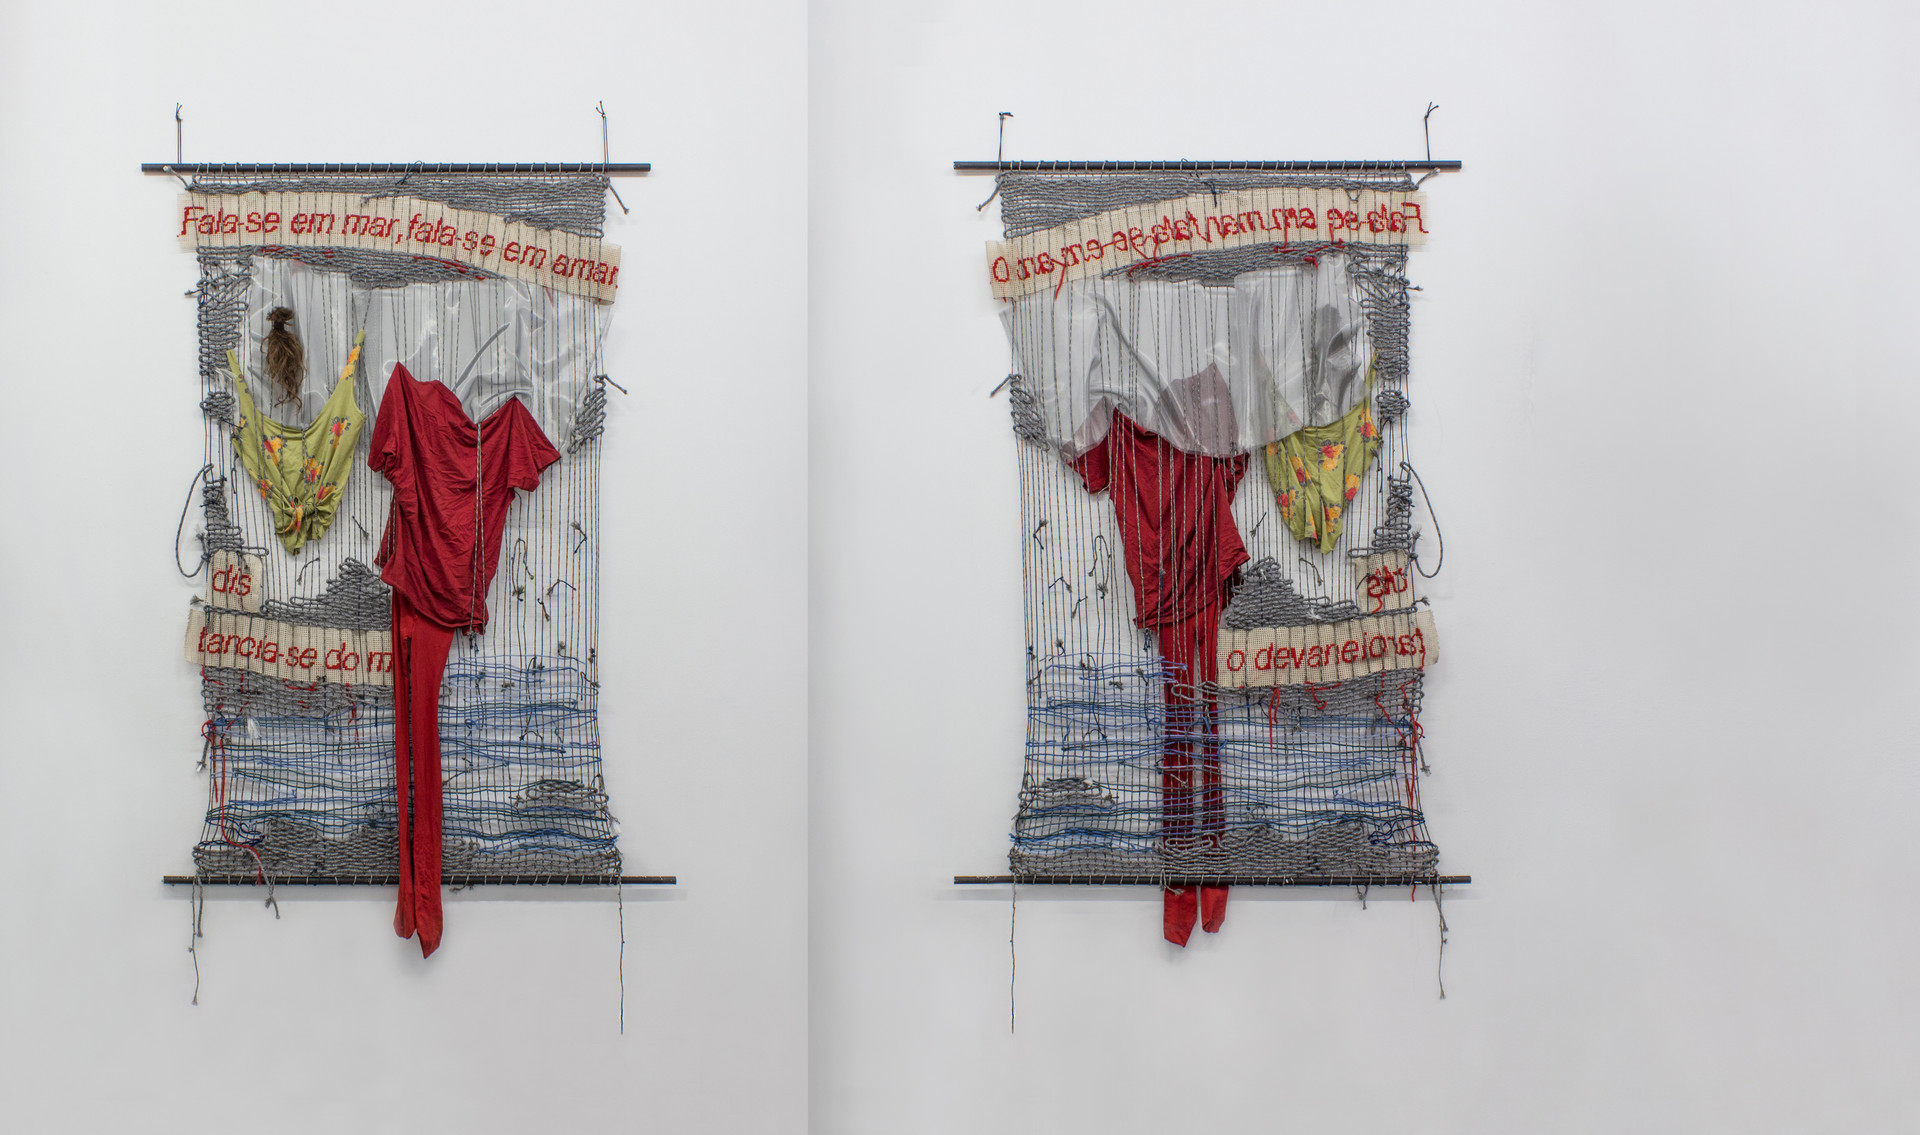 Woolgathering, 2018 | Various strings, wool, pieces of clothing, hair and embroidery in plaited braided in metal bars | 250 x 130 cm